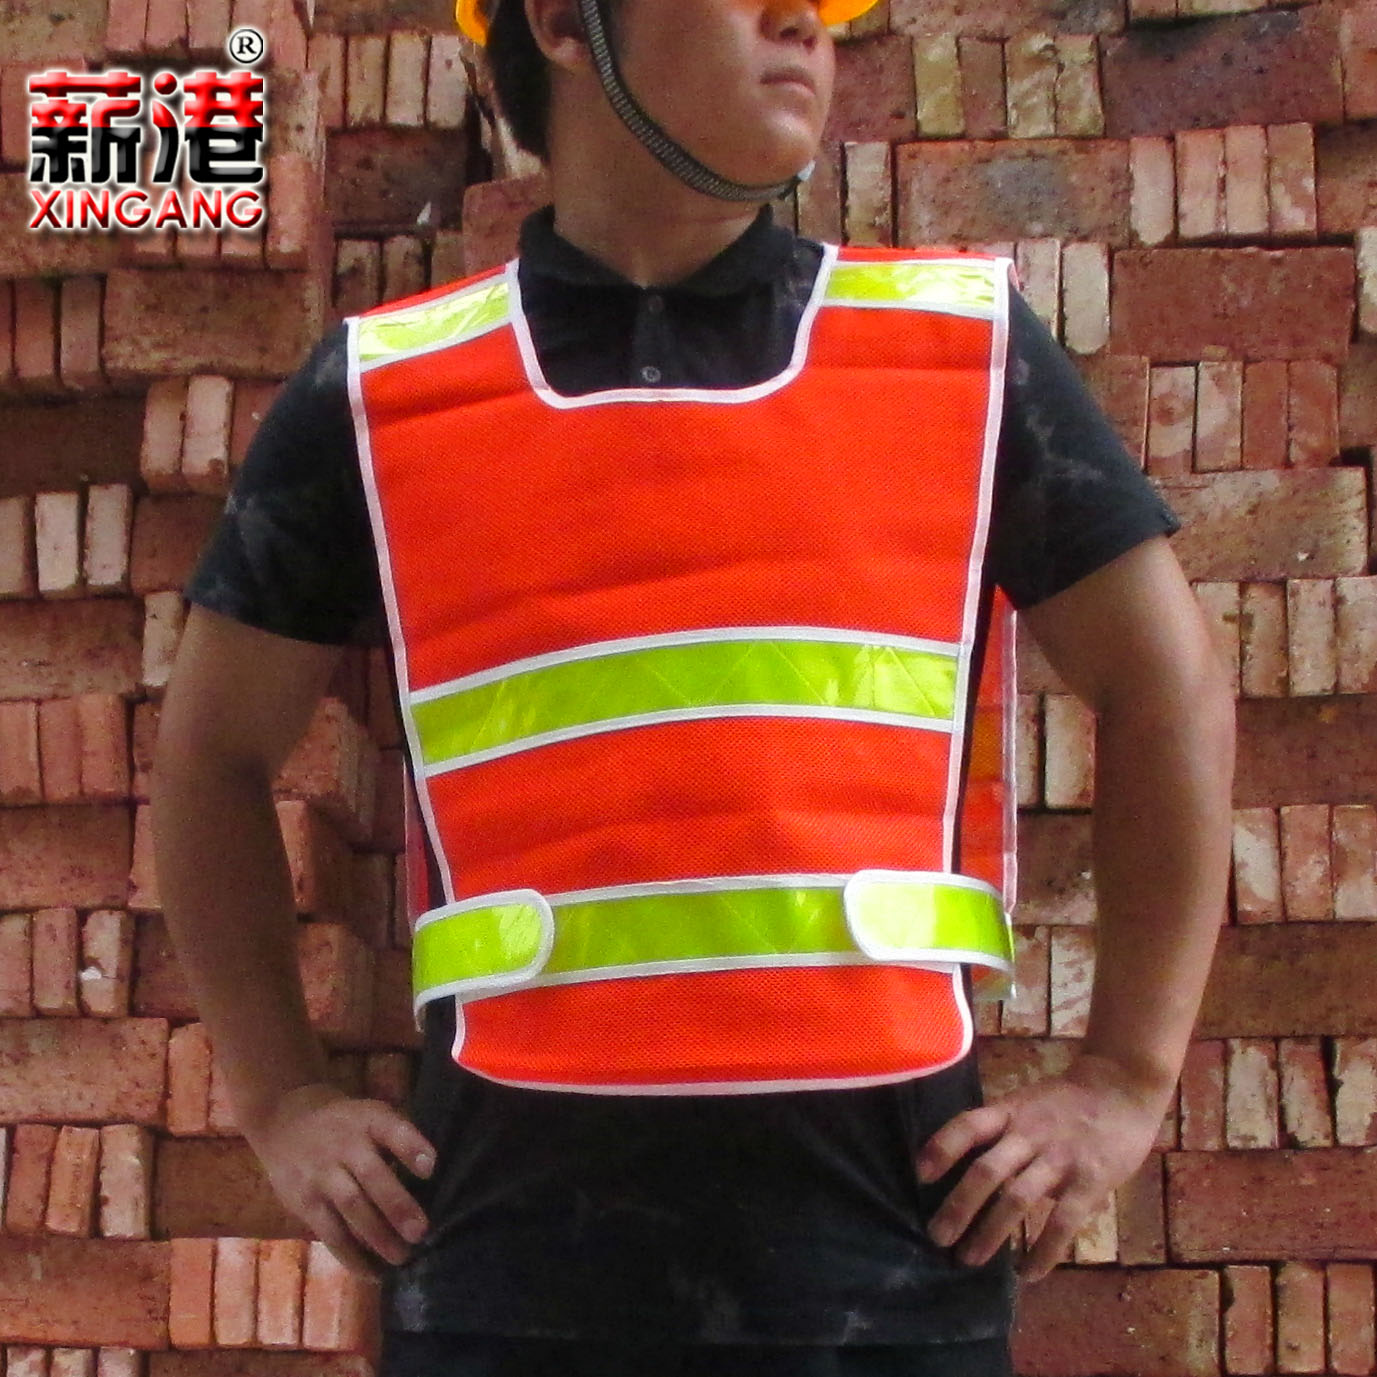 Port salary reflective vest traffic safety vest strong reflective vests reflective vests reflective vests reflective red mesh vest